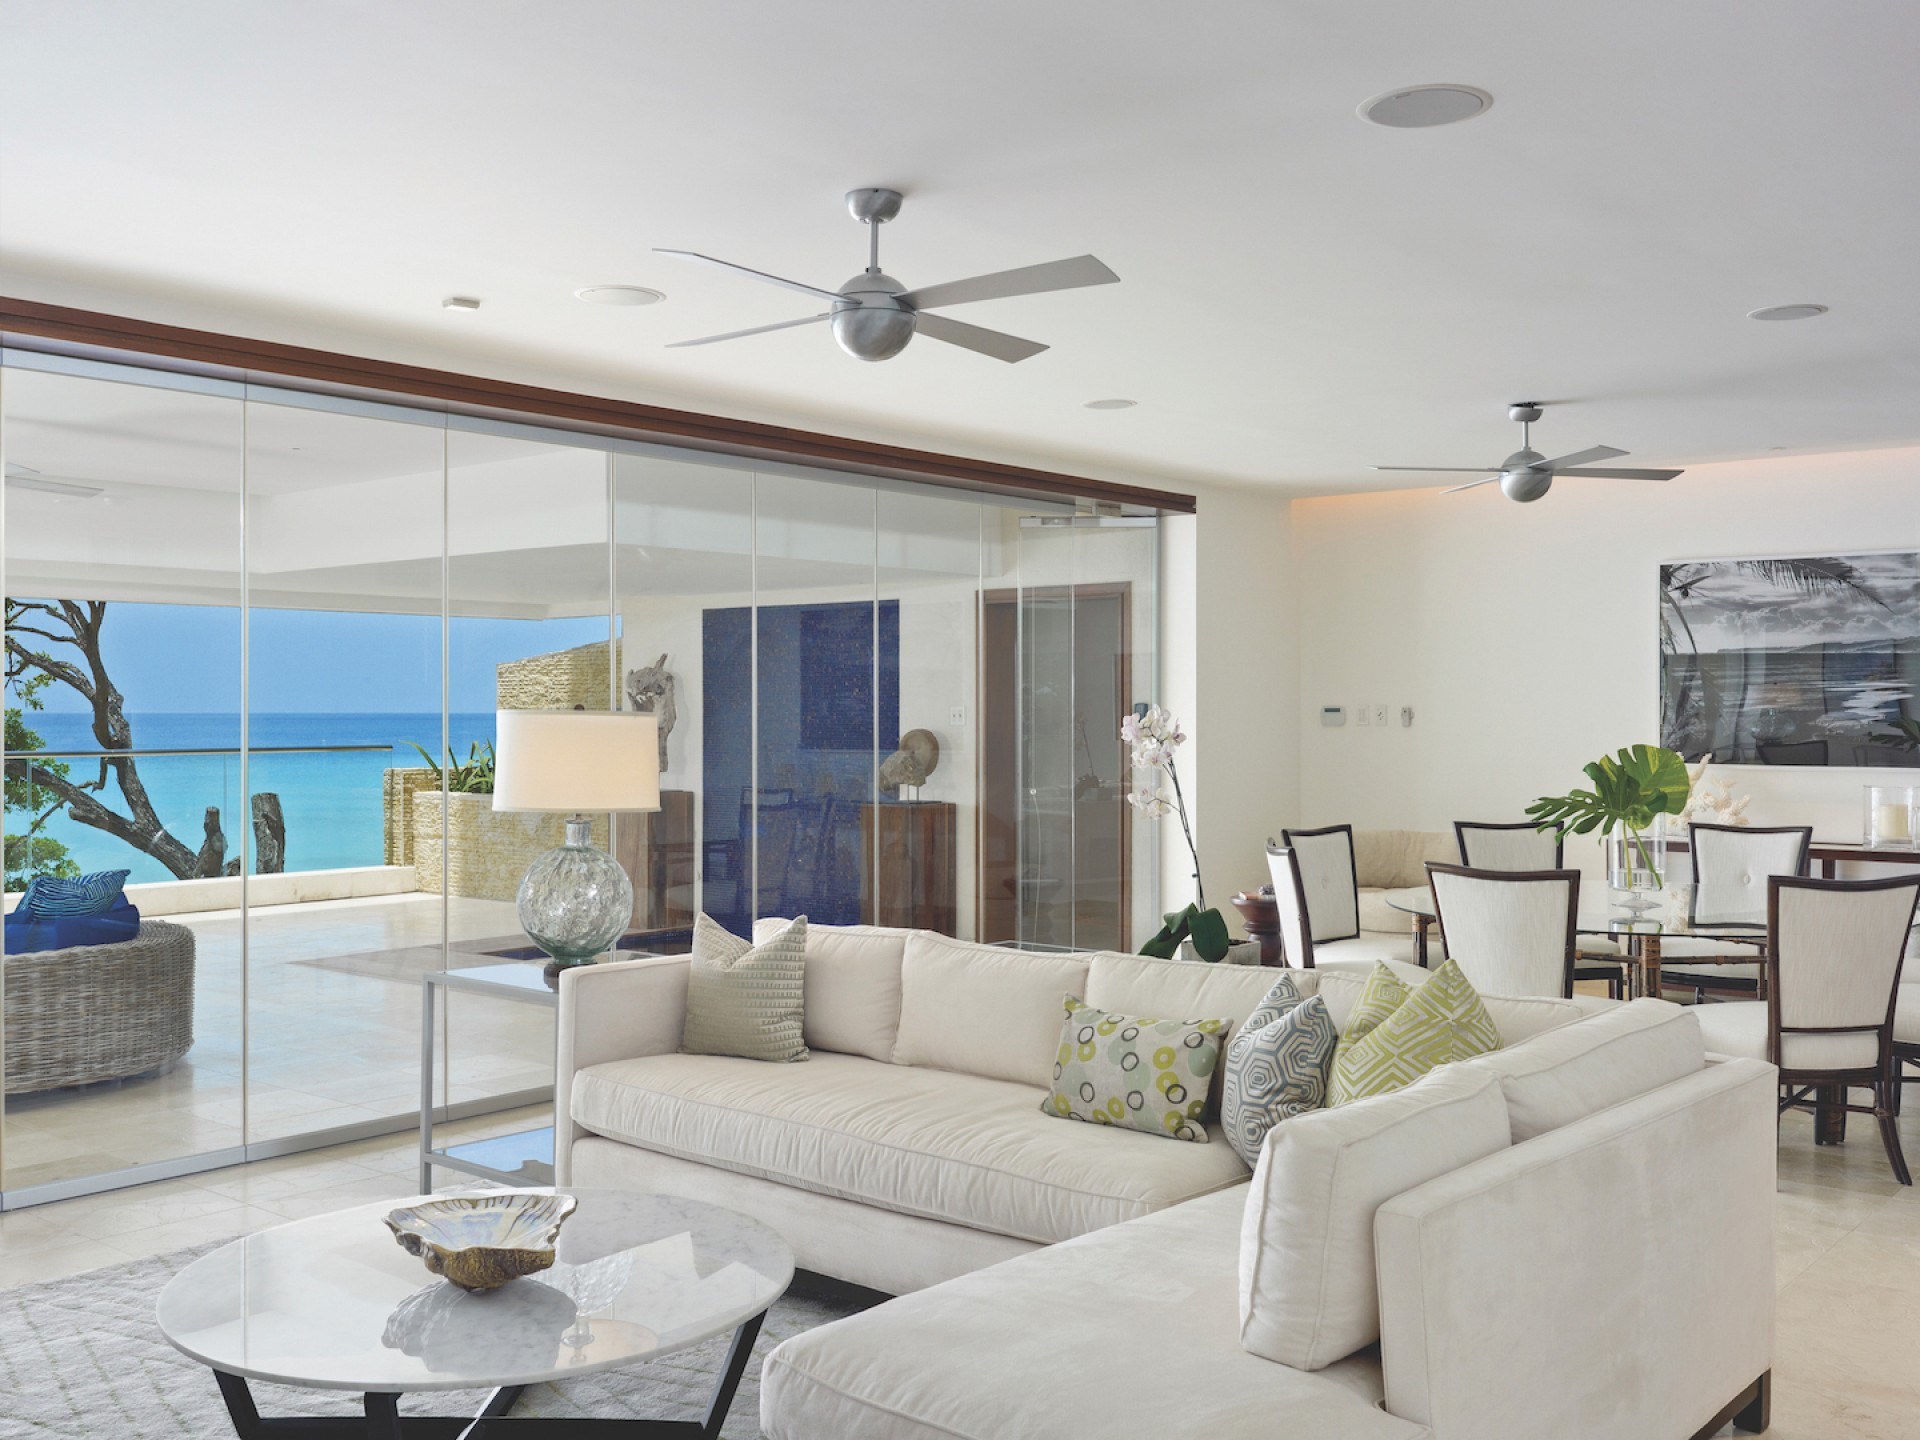 Beachfront Luxury Villas Barbados- Portico 1